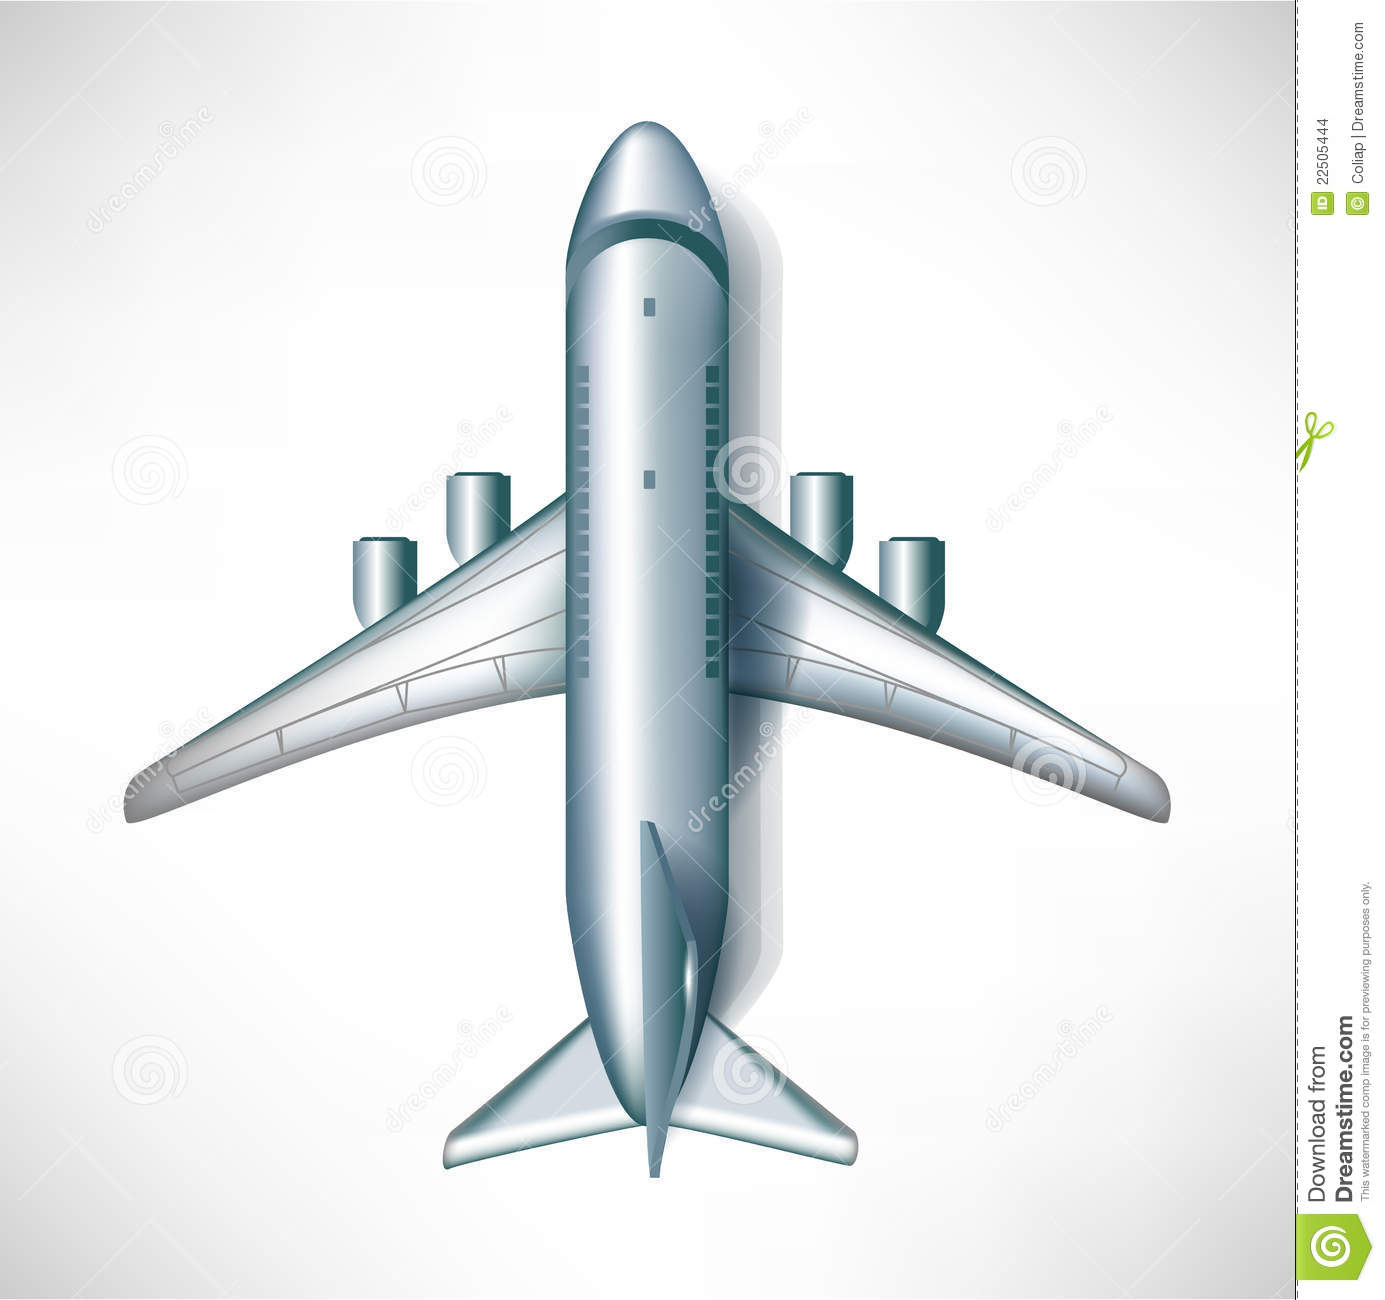 Air Plane Downward View Stock Images - Image: 22505444 Vintage Border Vector